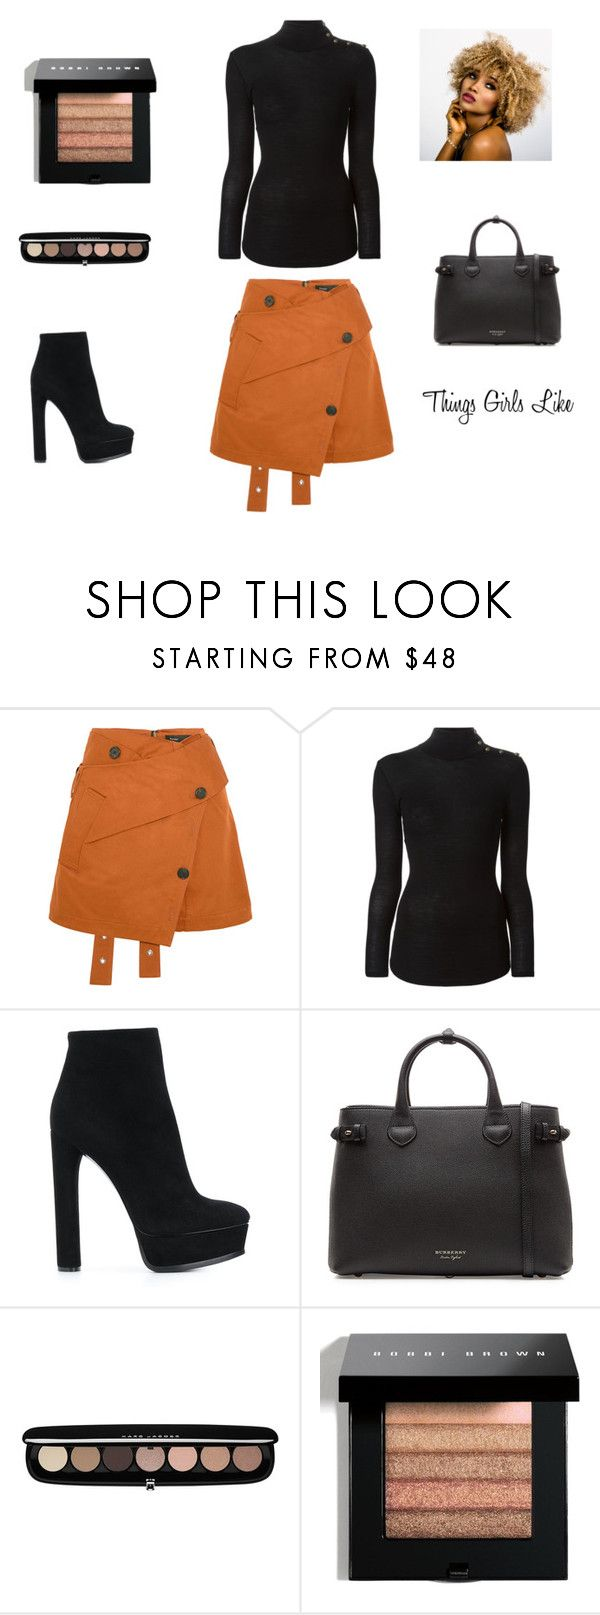 """""""COTTON TWILL MINI SKIRT"""" by elva-espinal ❤ liked on Polyvore featuring Proenza Schouler, Balmain, Casadei, Burberry, Marc Jacobs and Bobbi Brown Cosmetics"""